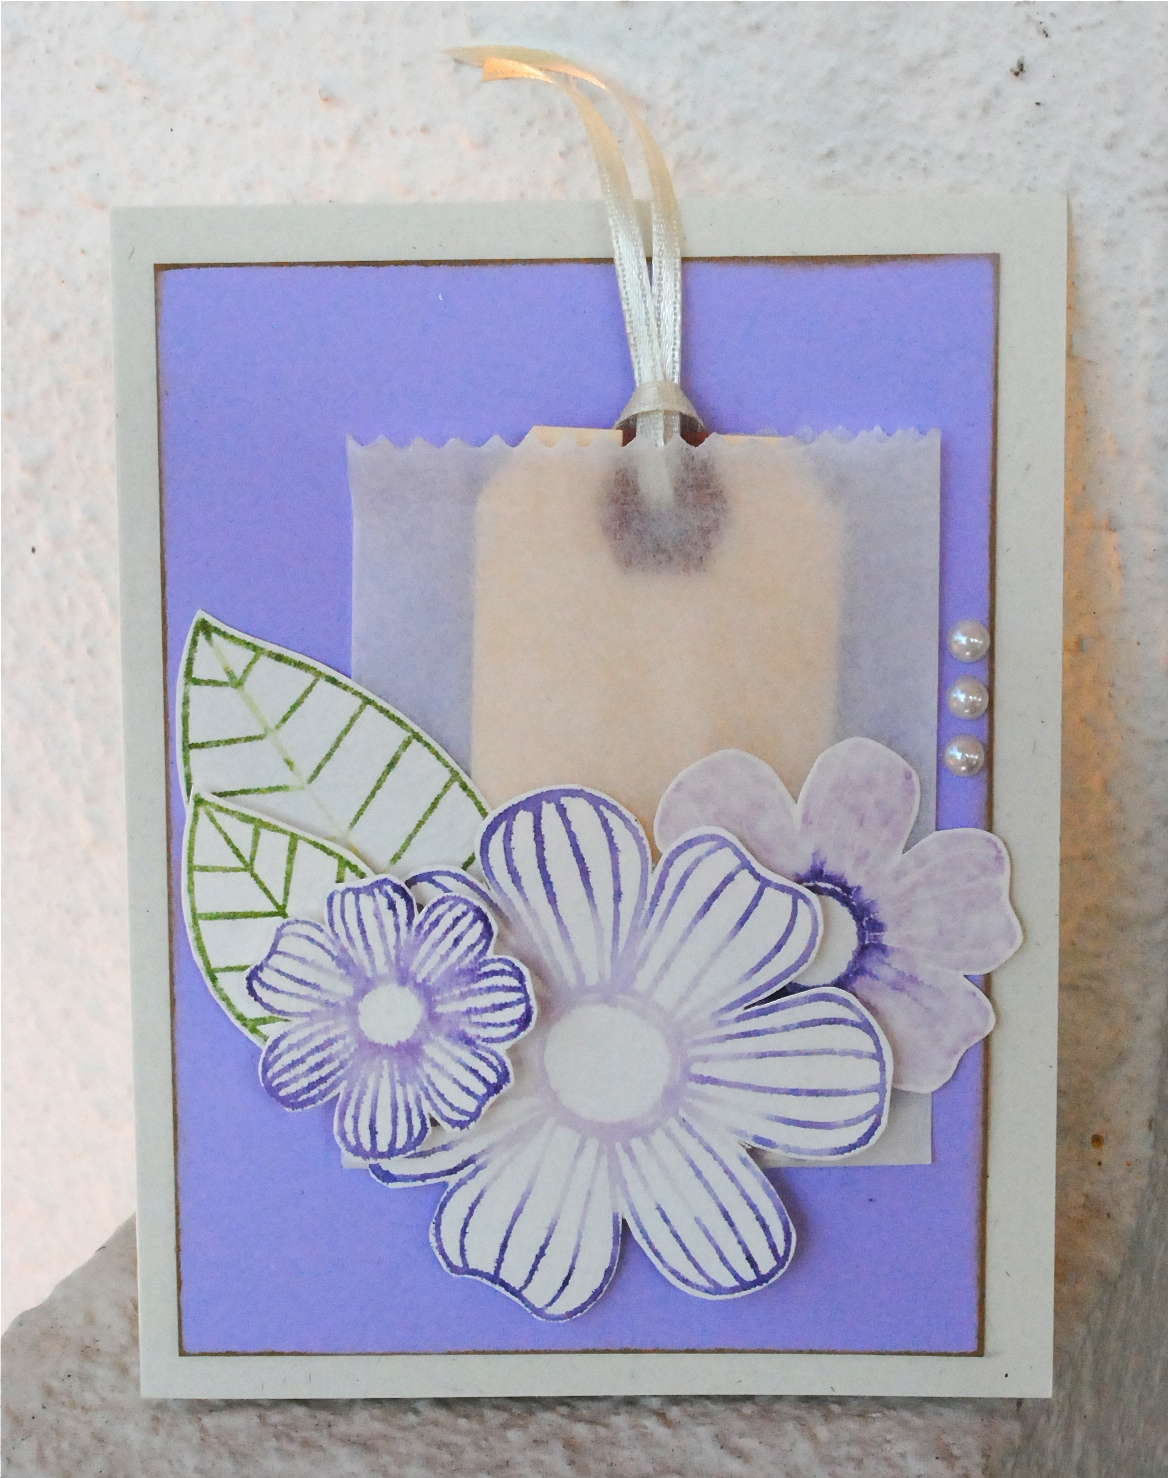 Hero arts stephinka handmade floral cards handmade cards singapore hand cut flowers memento markers stamping and thecheapjerseys Images